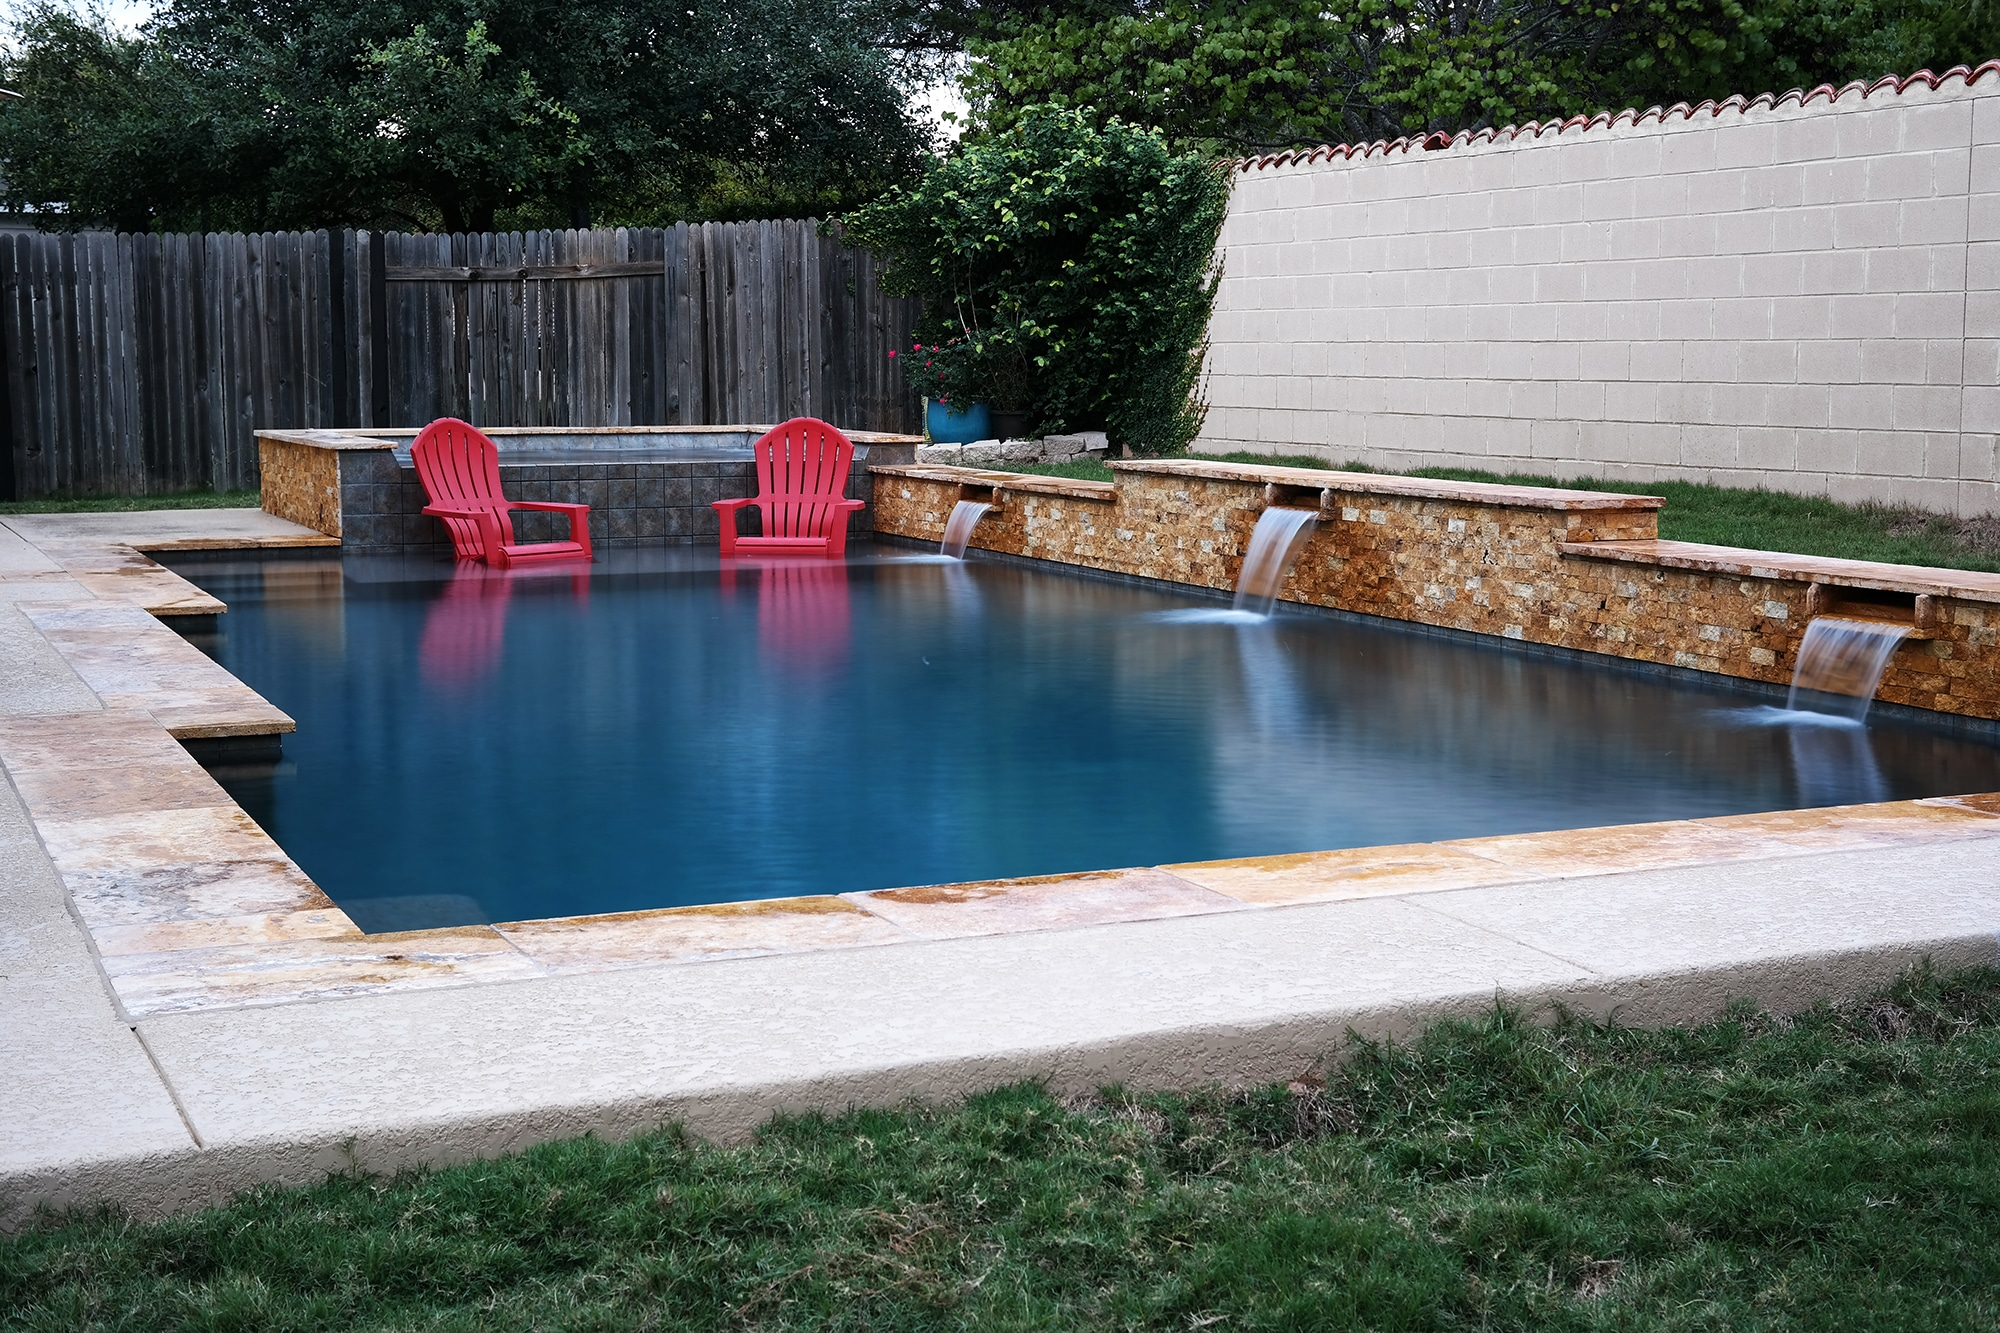 9 Geometic Swimming Pool And Spa In Cedar Park Tx 5 Reliant Pools Austin 39 S Custom Pool Builder